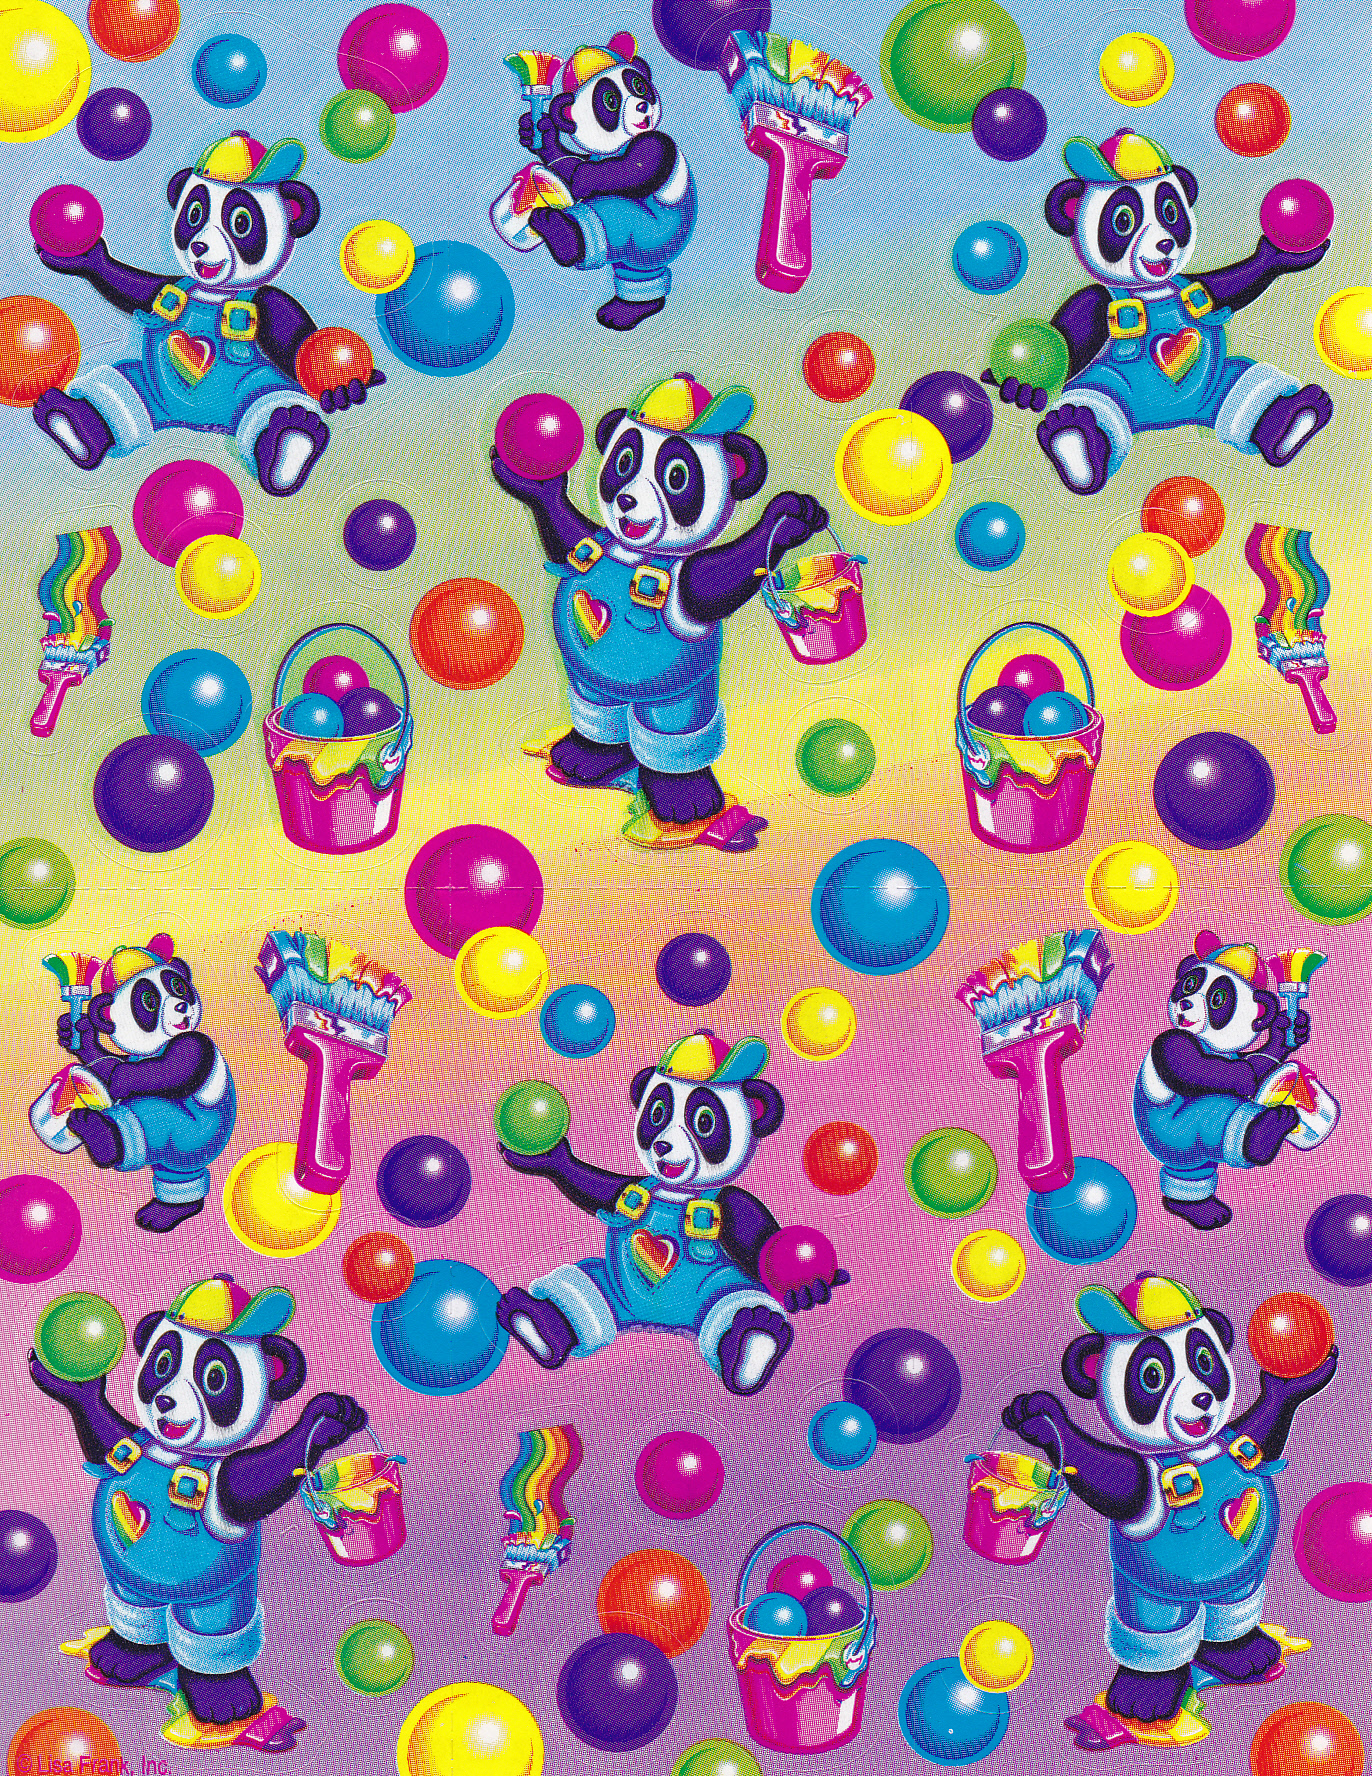 Lisa Frank Panda Painter Scented Stickers Nicole Flickr